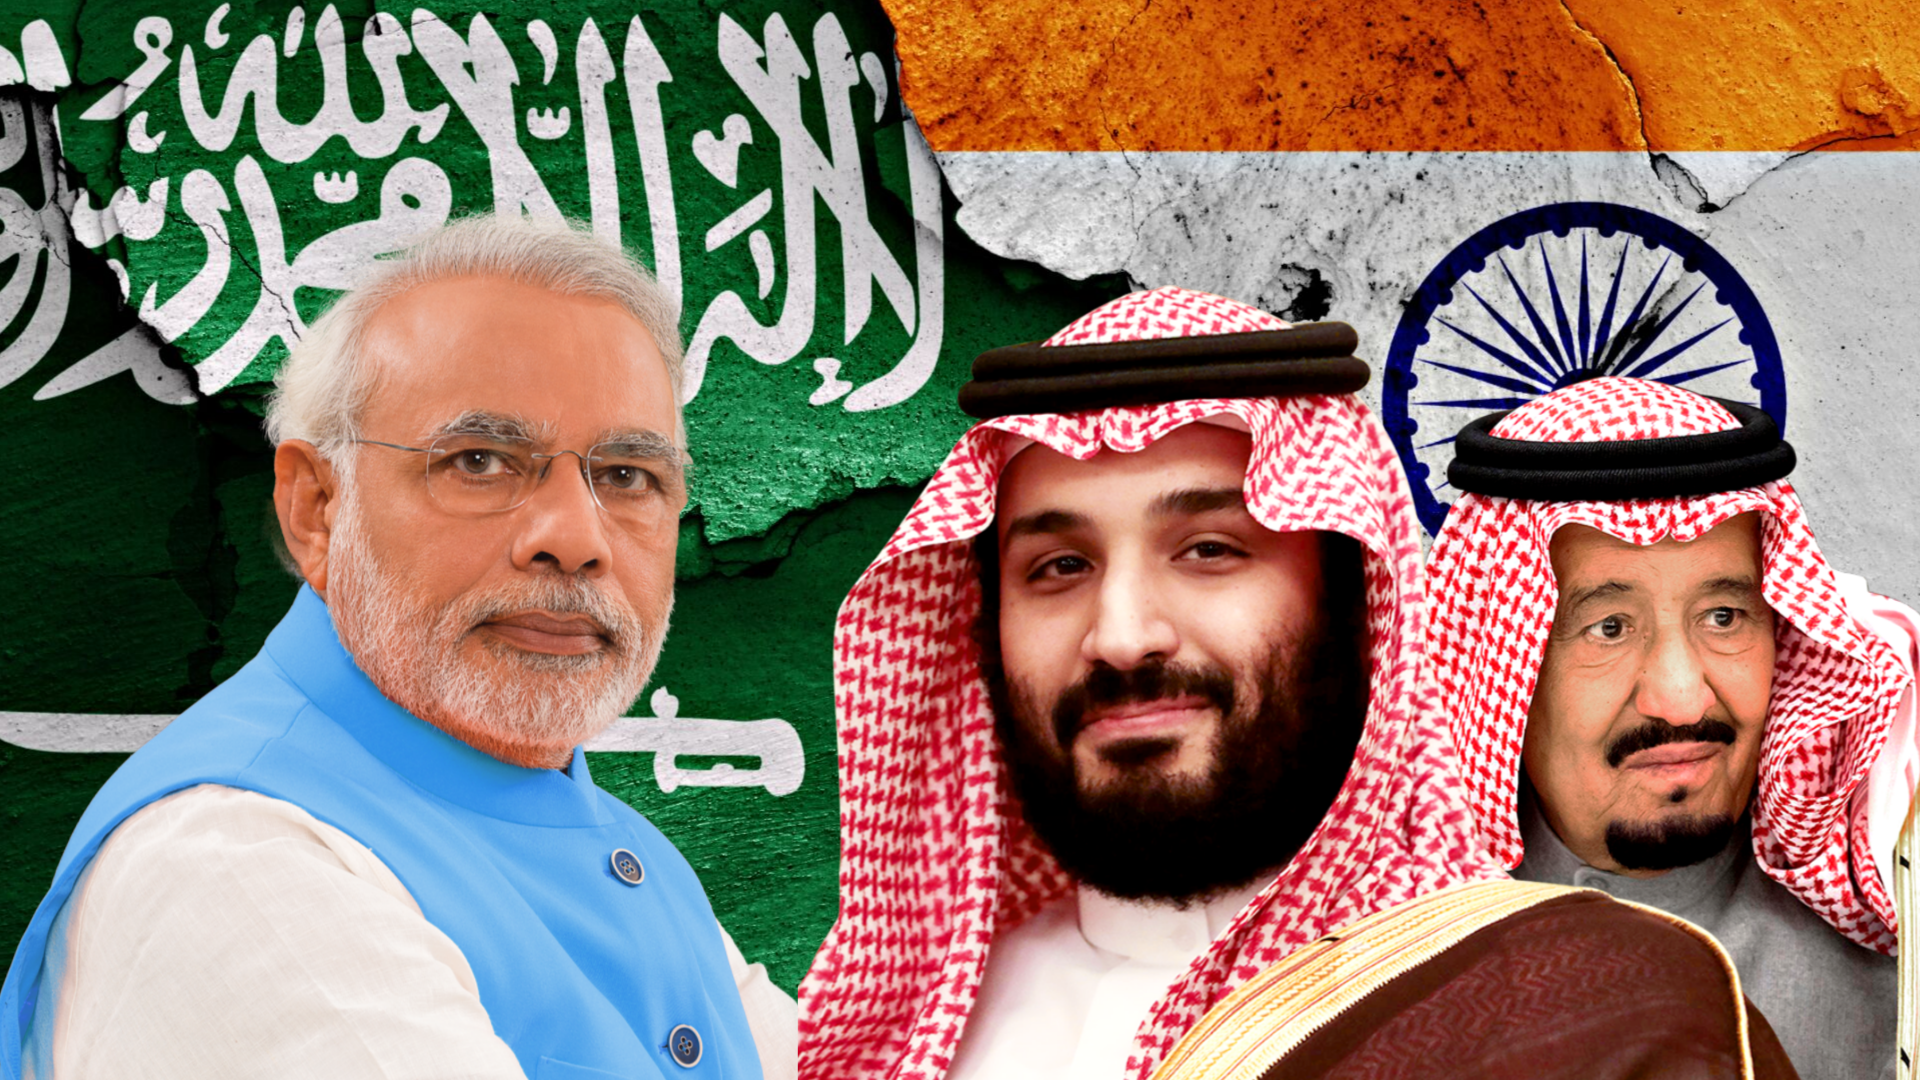 Saudi Arabia puts business ahead of Kashmir: 5 Geopolitical Effects You Need to Know